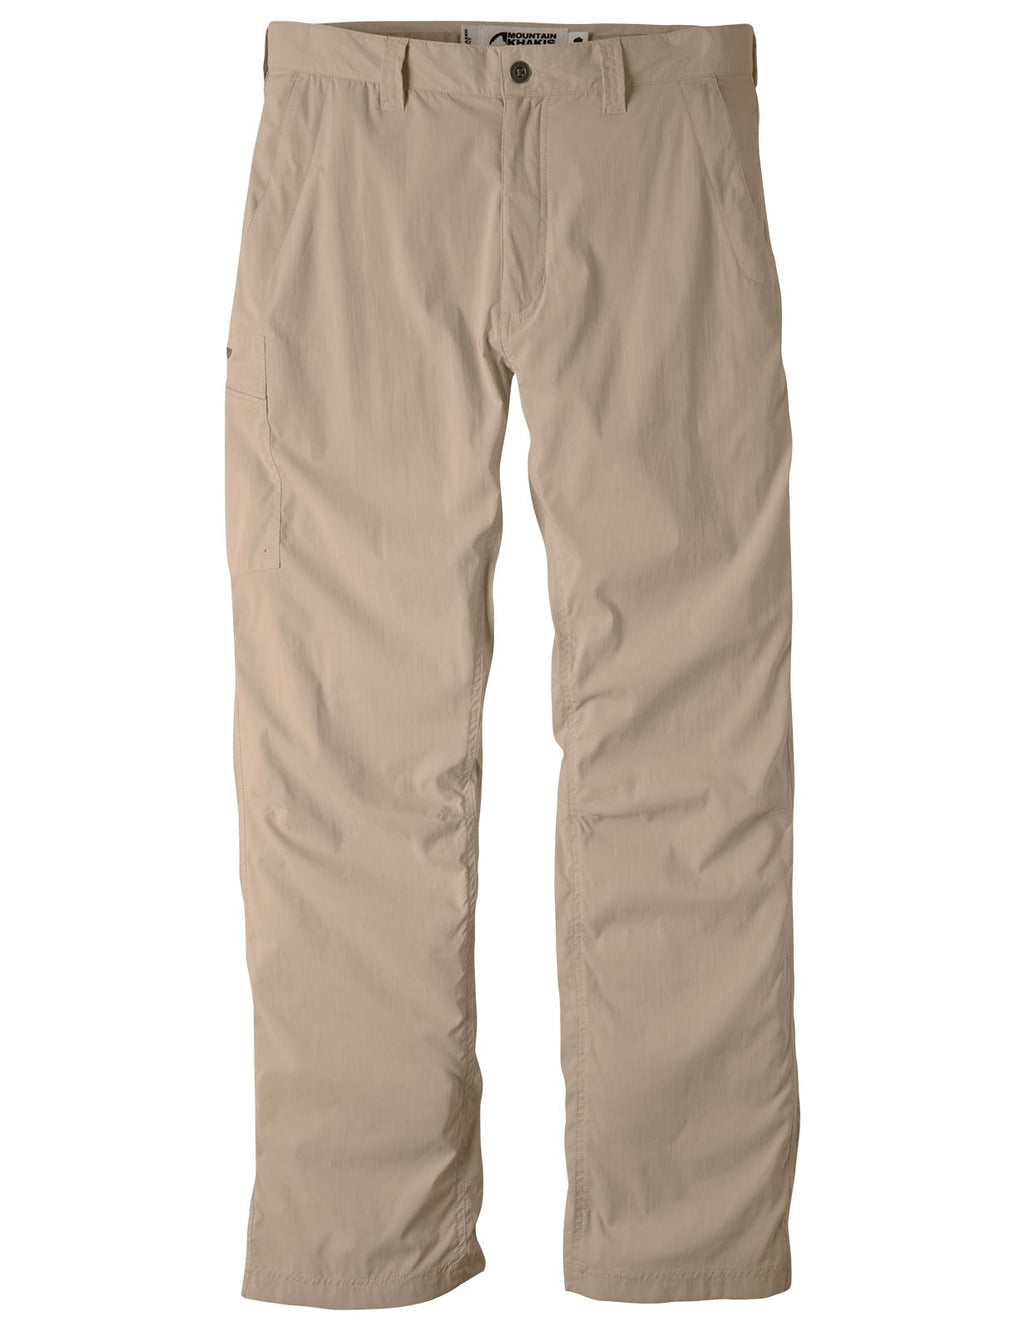 Men's Equatorial Stretch Pant Relaxed Fit